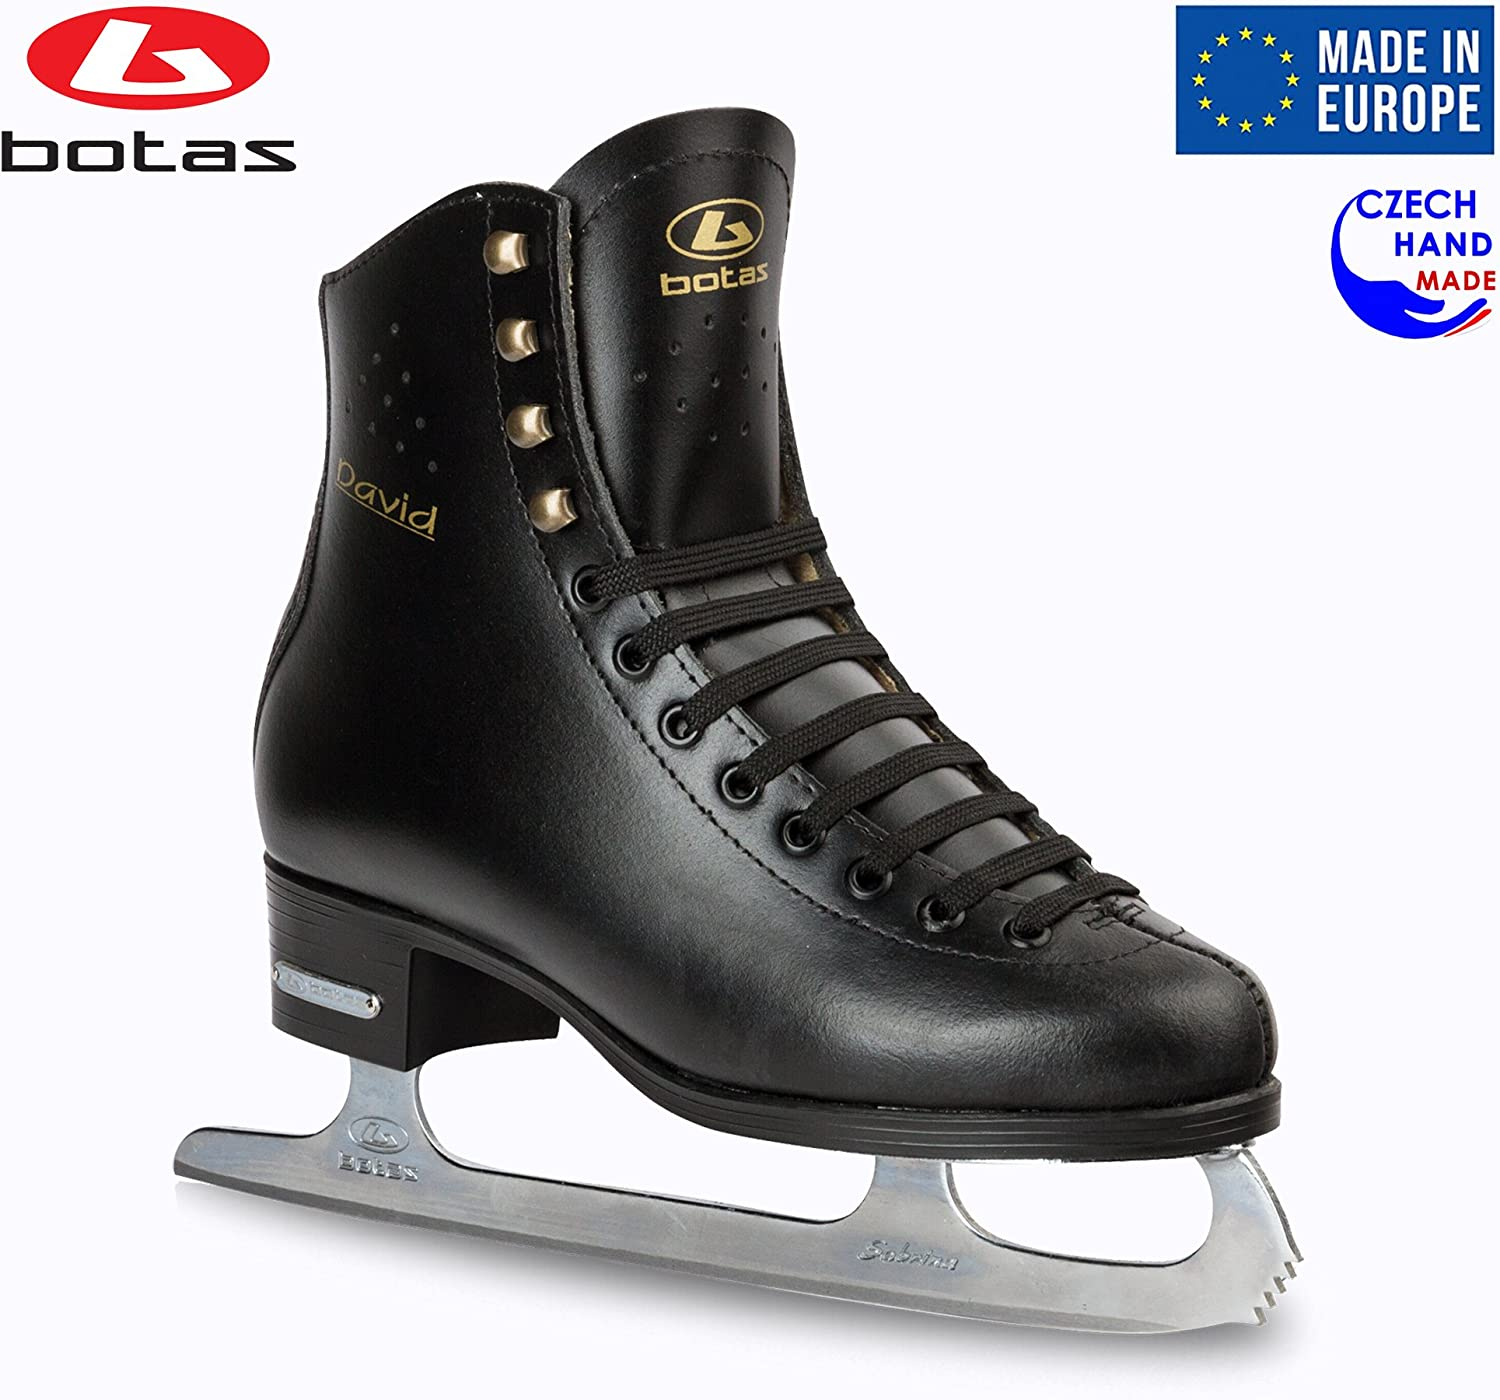 Botas – Model David Made in Europe Czech Republic Figure Ice Skates for Men, Boys Sabrina Blades Black Color